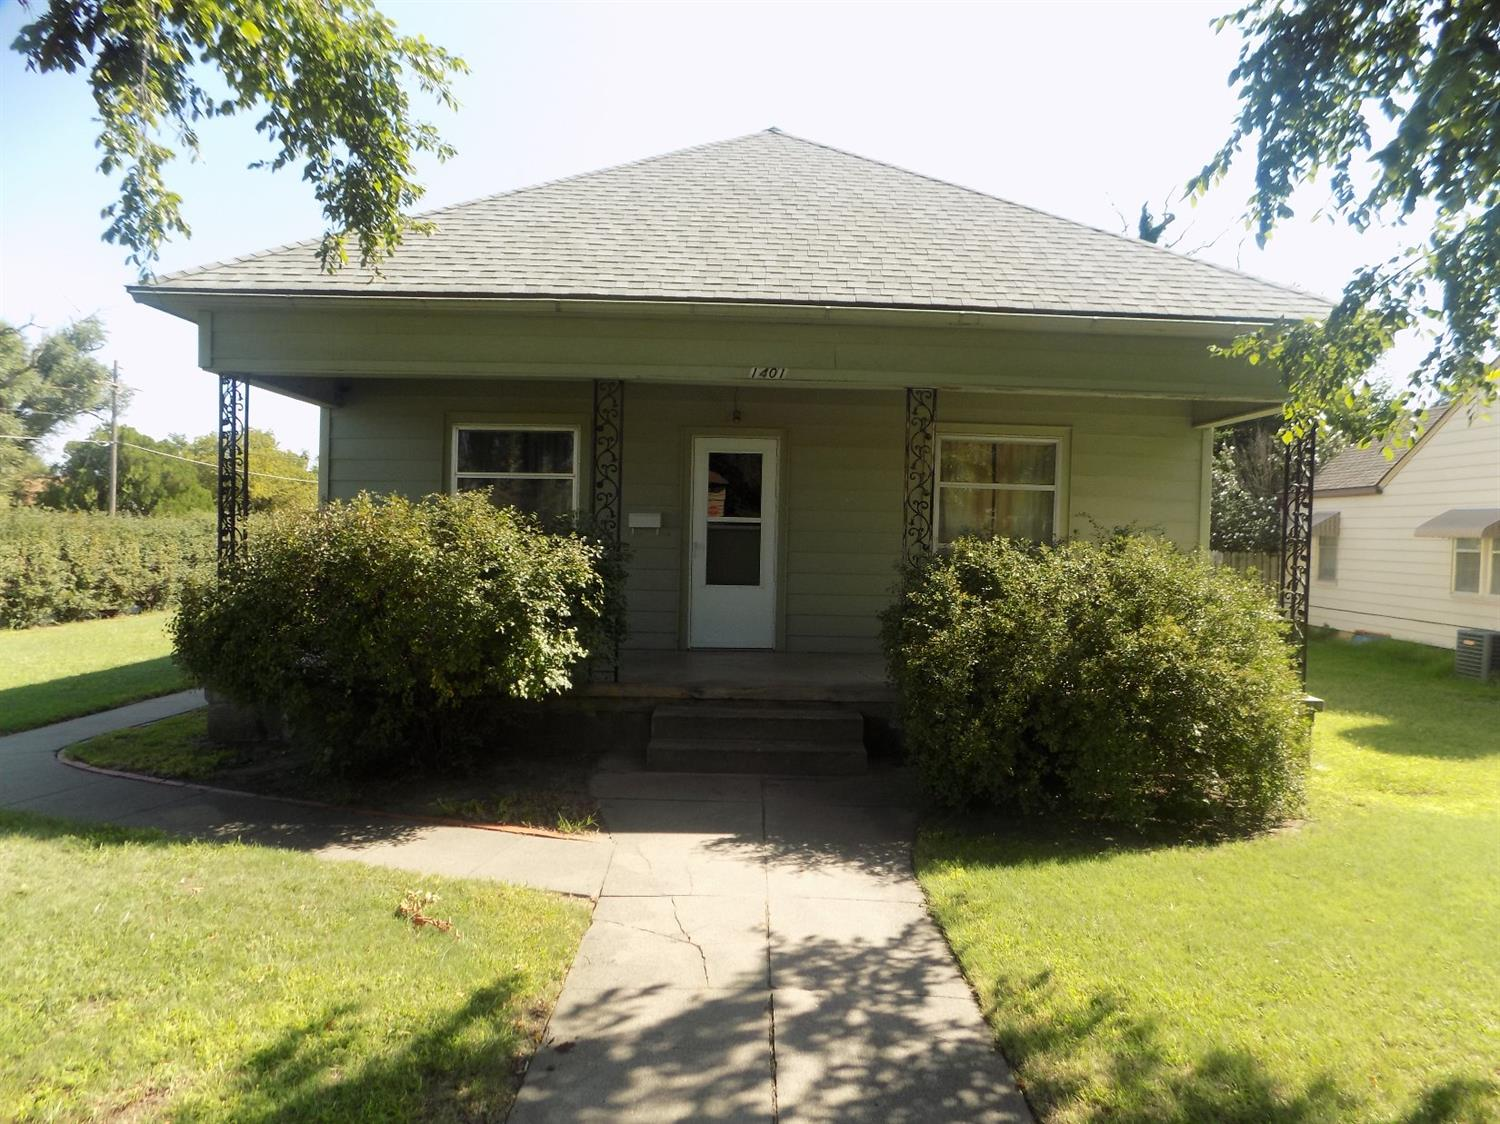 2 for the price of 1! Main home on 12th St. has 3 bedrooms/1.5 baths. Bonus home on Frey has 2 bedrooms/1 bath built in 1925 with 696 sq. ft.    Central heat and air- 2 years ago    New roof with 50yr warranty through Vision roofing- End of last summer    Kitchen, hallway, laundry room, and bathroom completely gutted and remodeled- by christmas 2017.    New concrete in the drive way- 2 years ago    New sewer line and all new water plumbing in the rental. Roughly 5 years ago    Metal shed on the side comes with house    Washer and dryer does not go with house.    Stove, fridge, and dish washer goes with house.    Rental comes with fridge and stove.